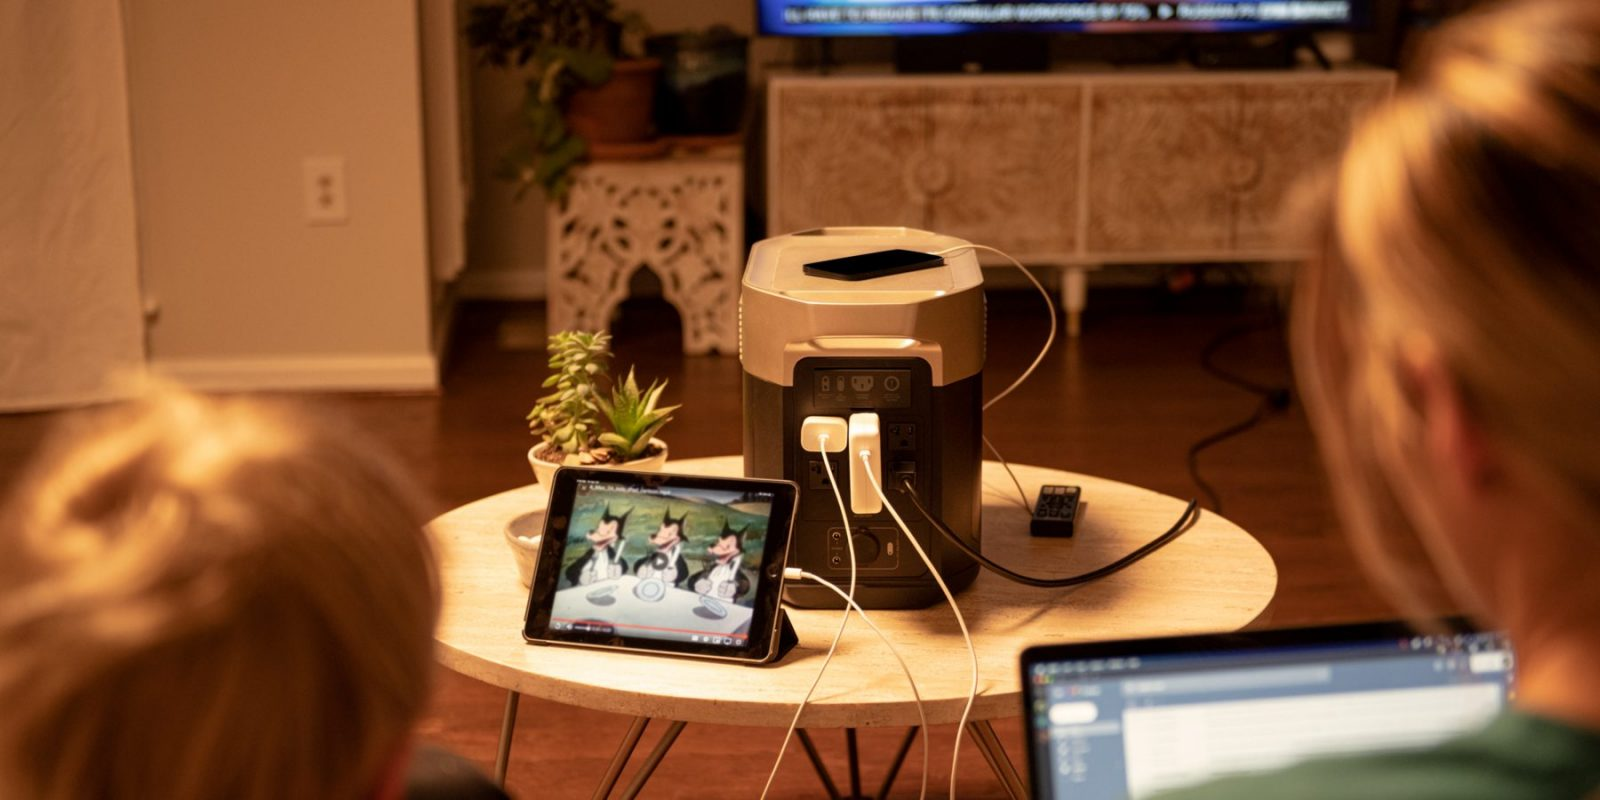 EcoFlow Delta Max Power 99% of Your Home Devices